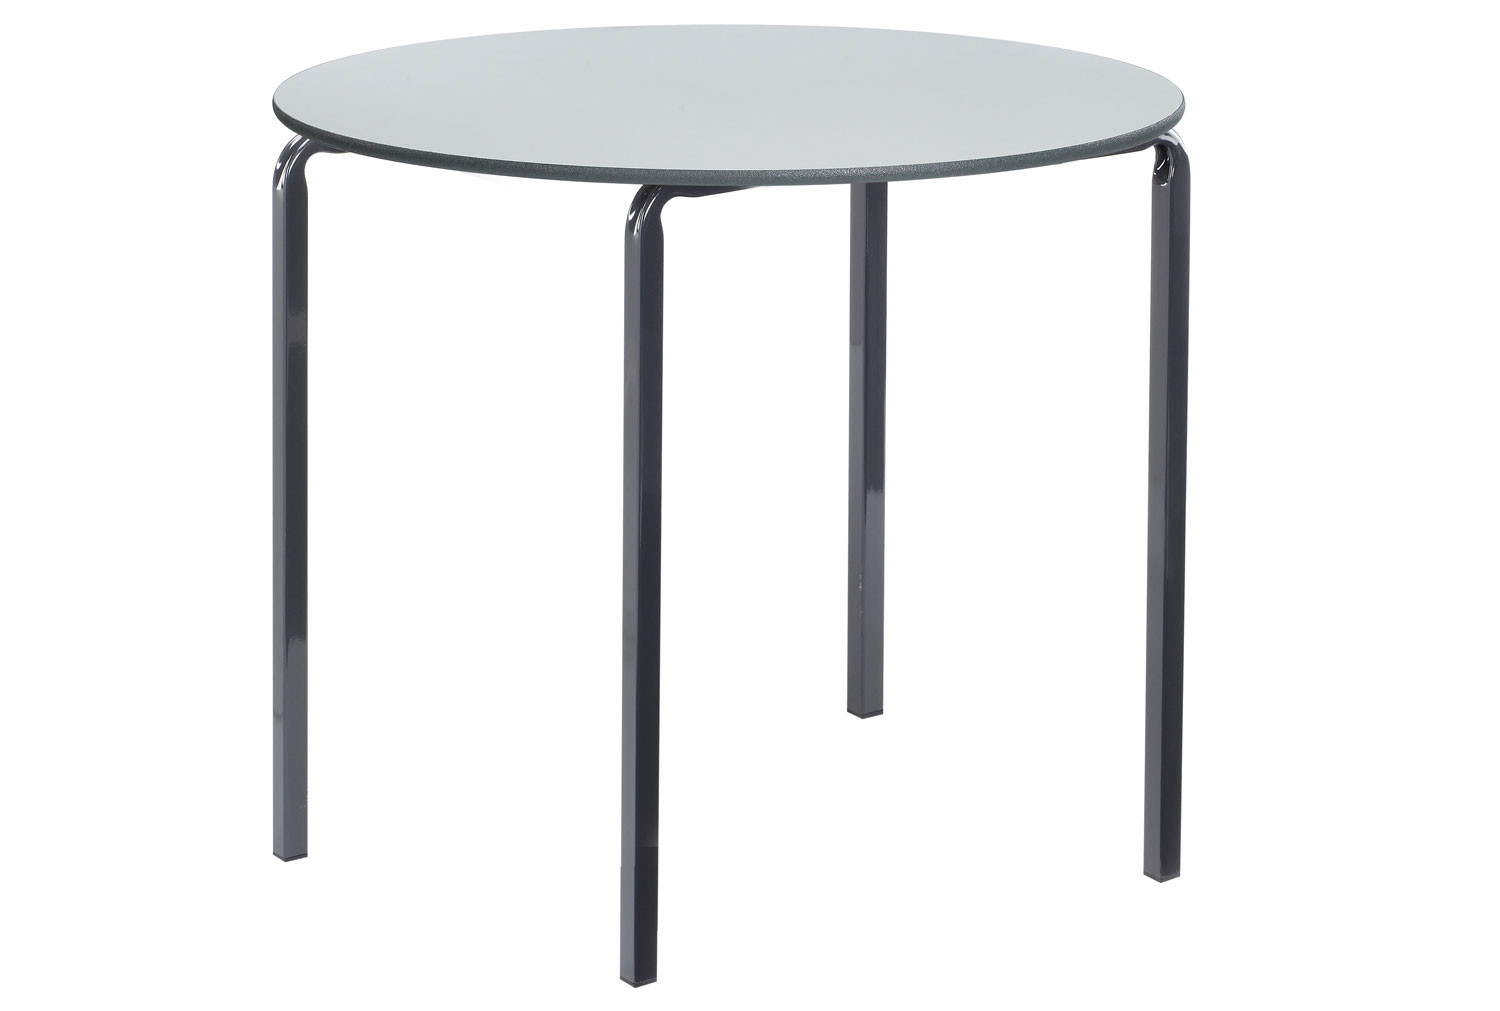 Reliance Circular Classroom Tables 11-14 Years